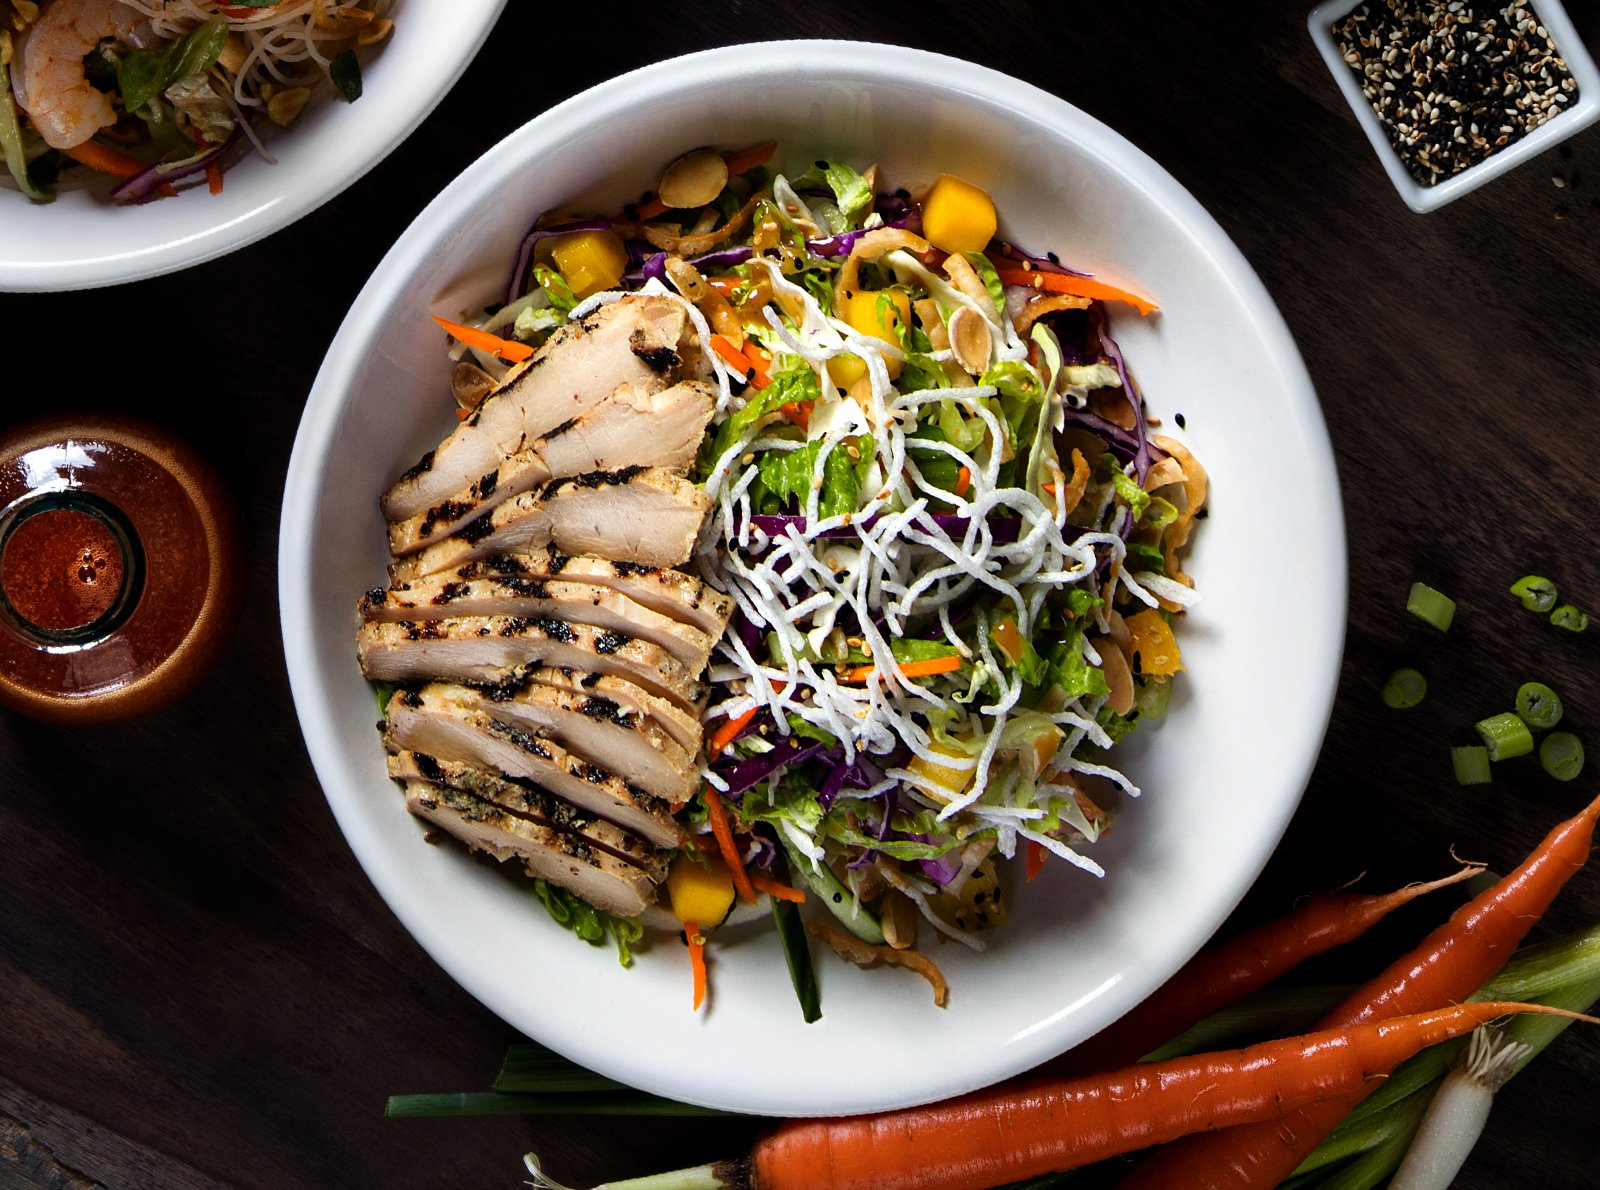 P. F. Chang's Lunch Bowls BOGO FREE!